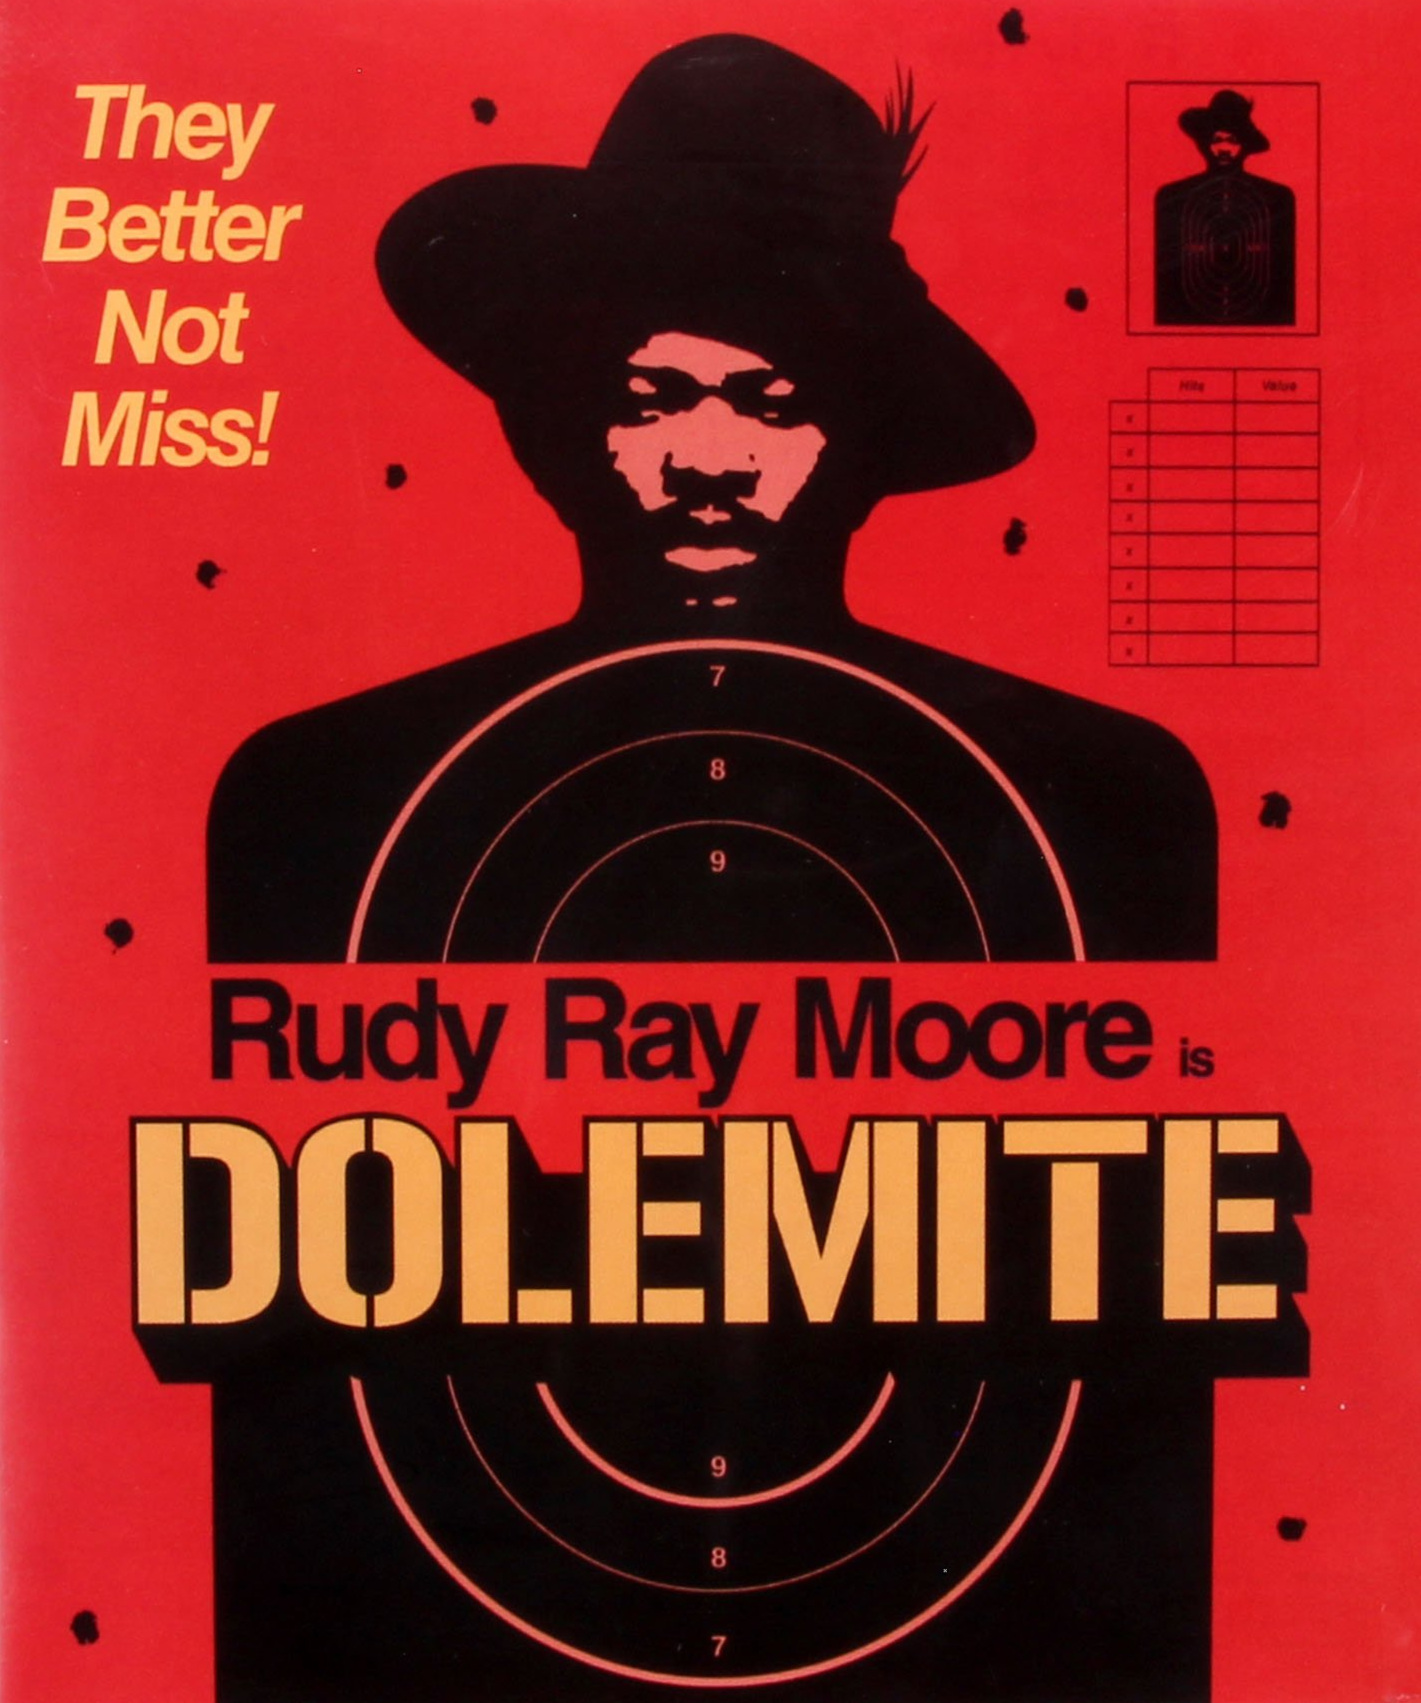 DOLEMITE - (RECOMMENDED PURCHASE)(Rudy Ray Moore), the baddest pimp in town, has just been released from prison, ready to take revenge on notorious gangster Willie Green (D'Urville Martin), who set him up on a phony drug charge and stole his club, The Total Experience. With the help of his friend Queen Bee (Lady Reed) and their band of Kung Fu fighting vixens, Dolemite takes on every